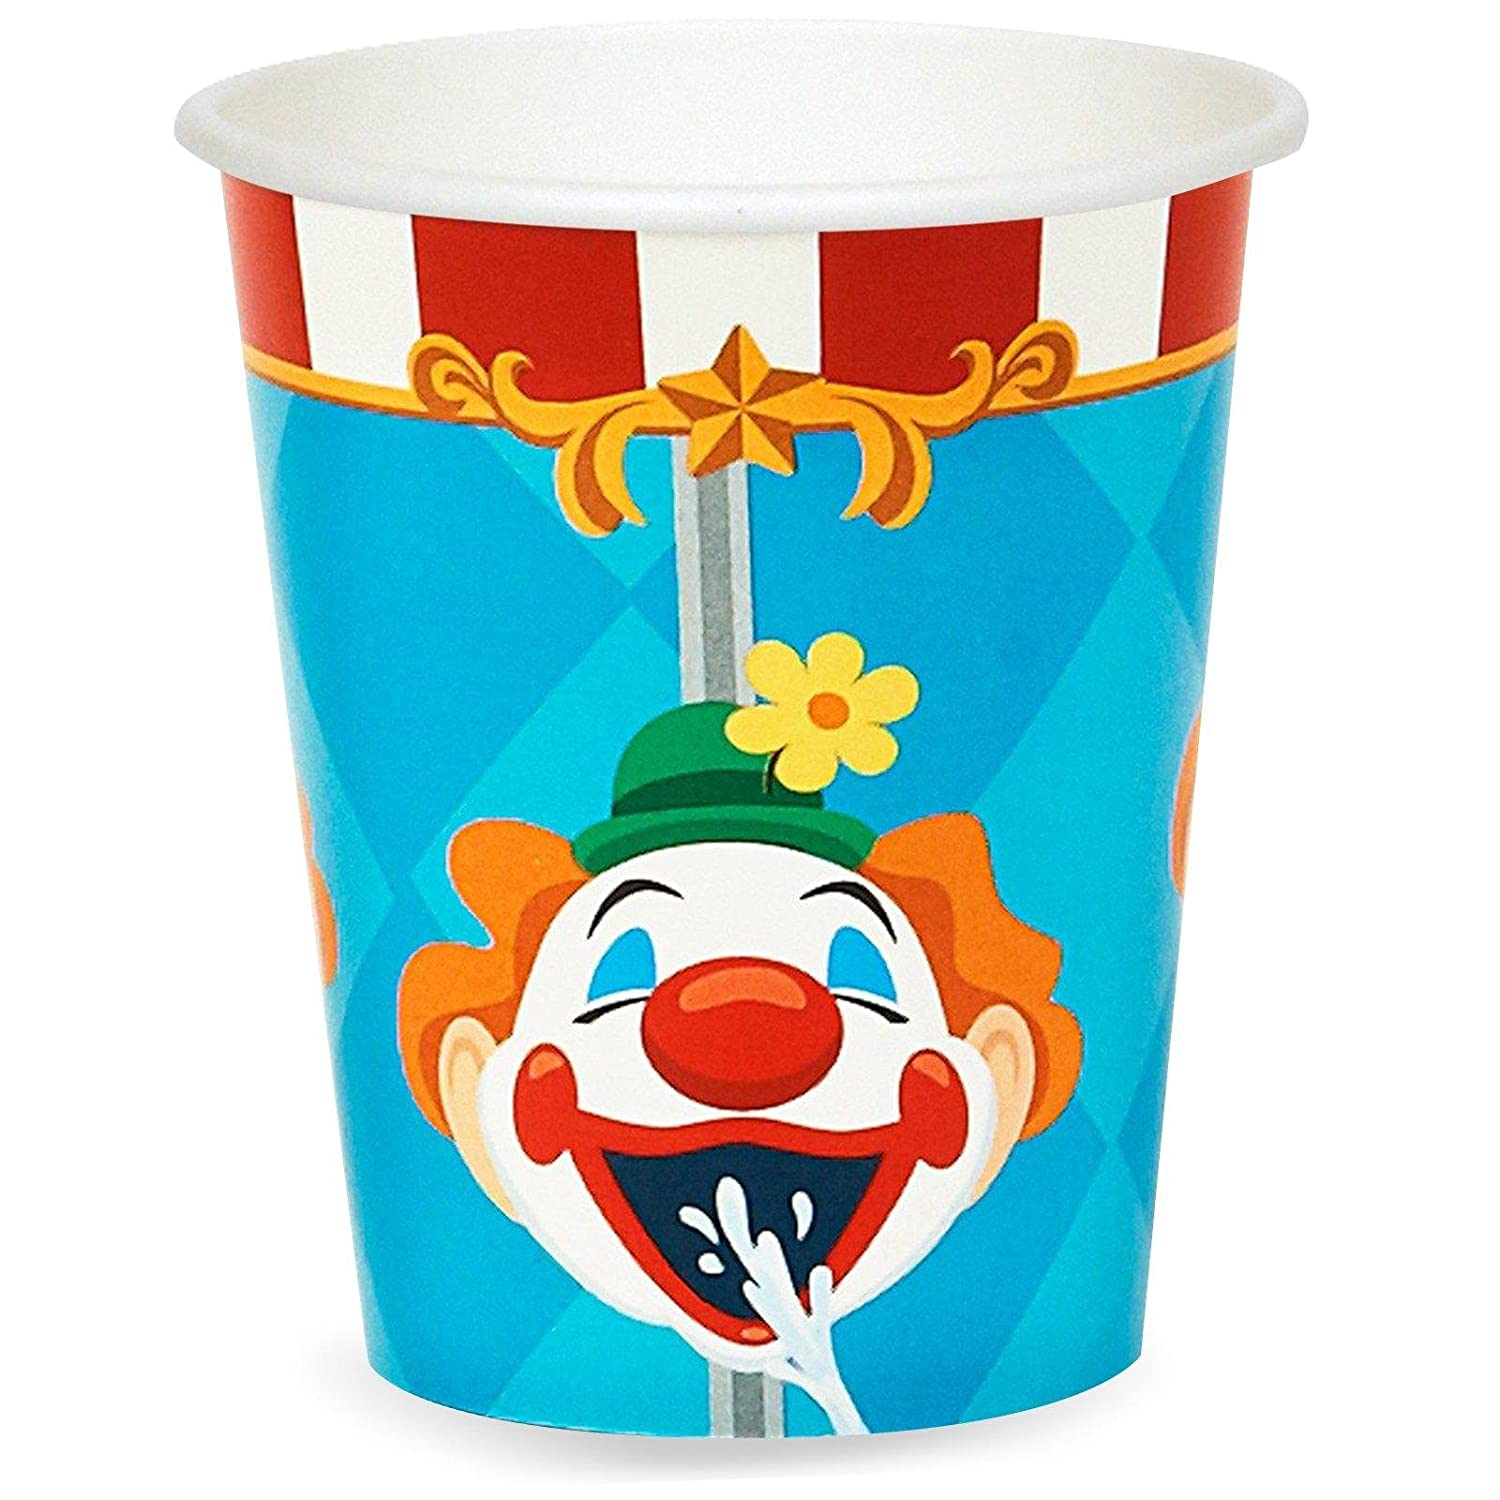 12 Fun Circus Carnival Party Games: Circus Birthday Party Cups